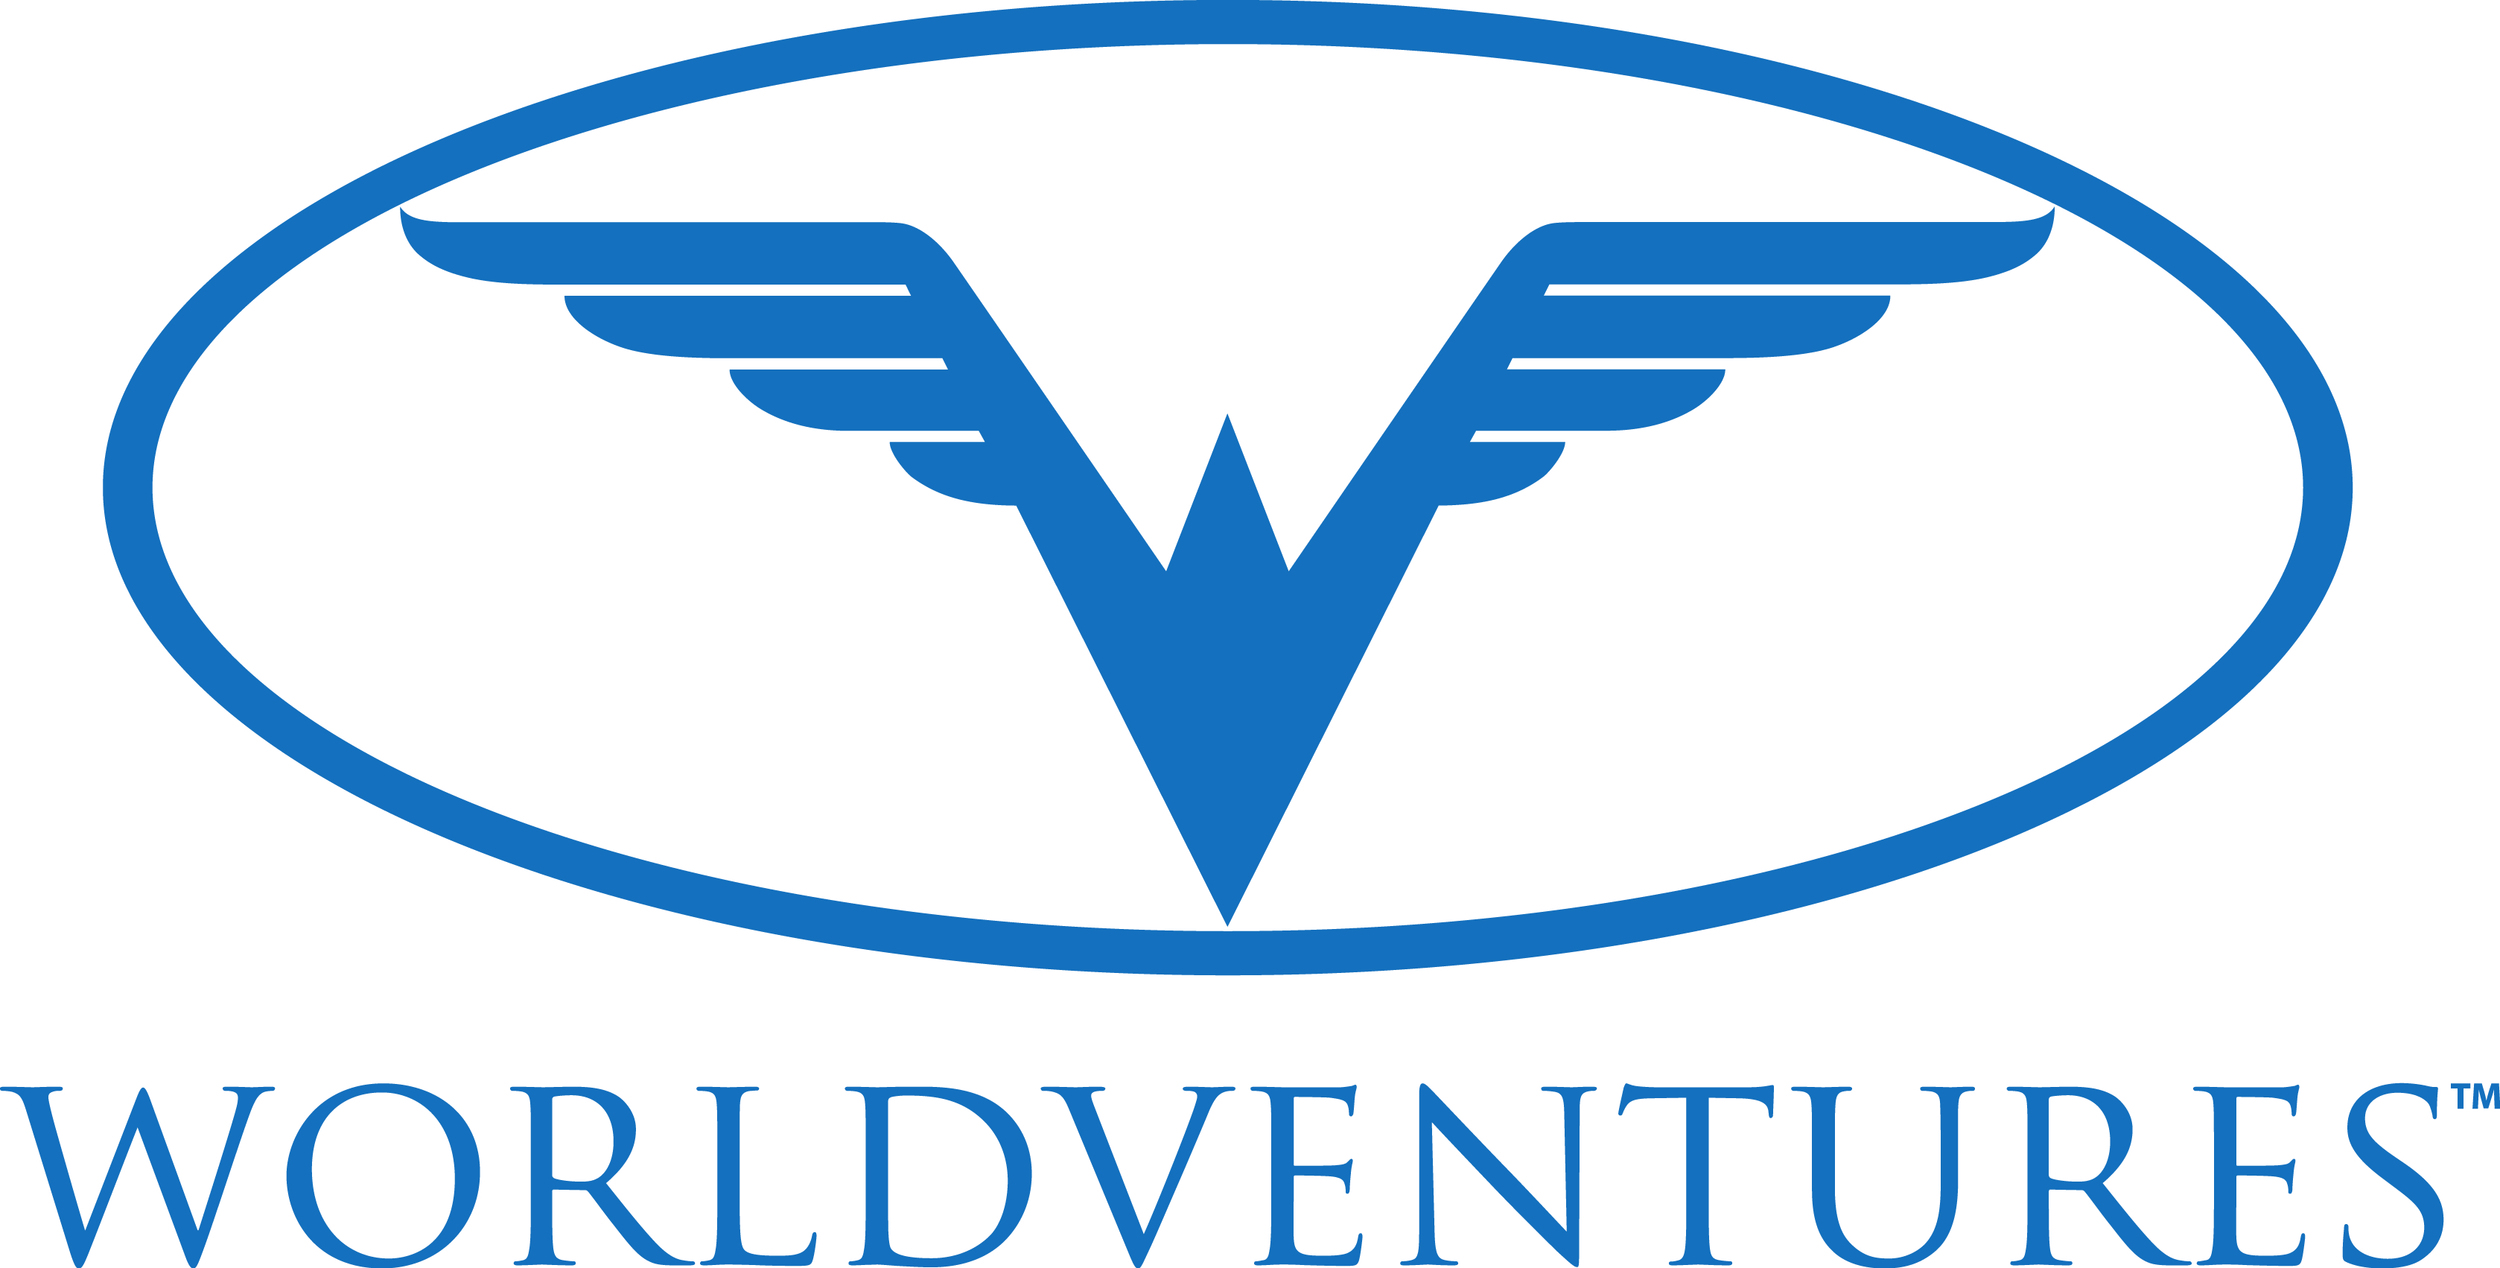 World_Ventures_May_2016.jpg